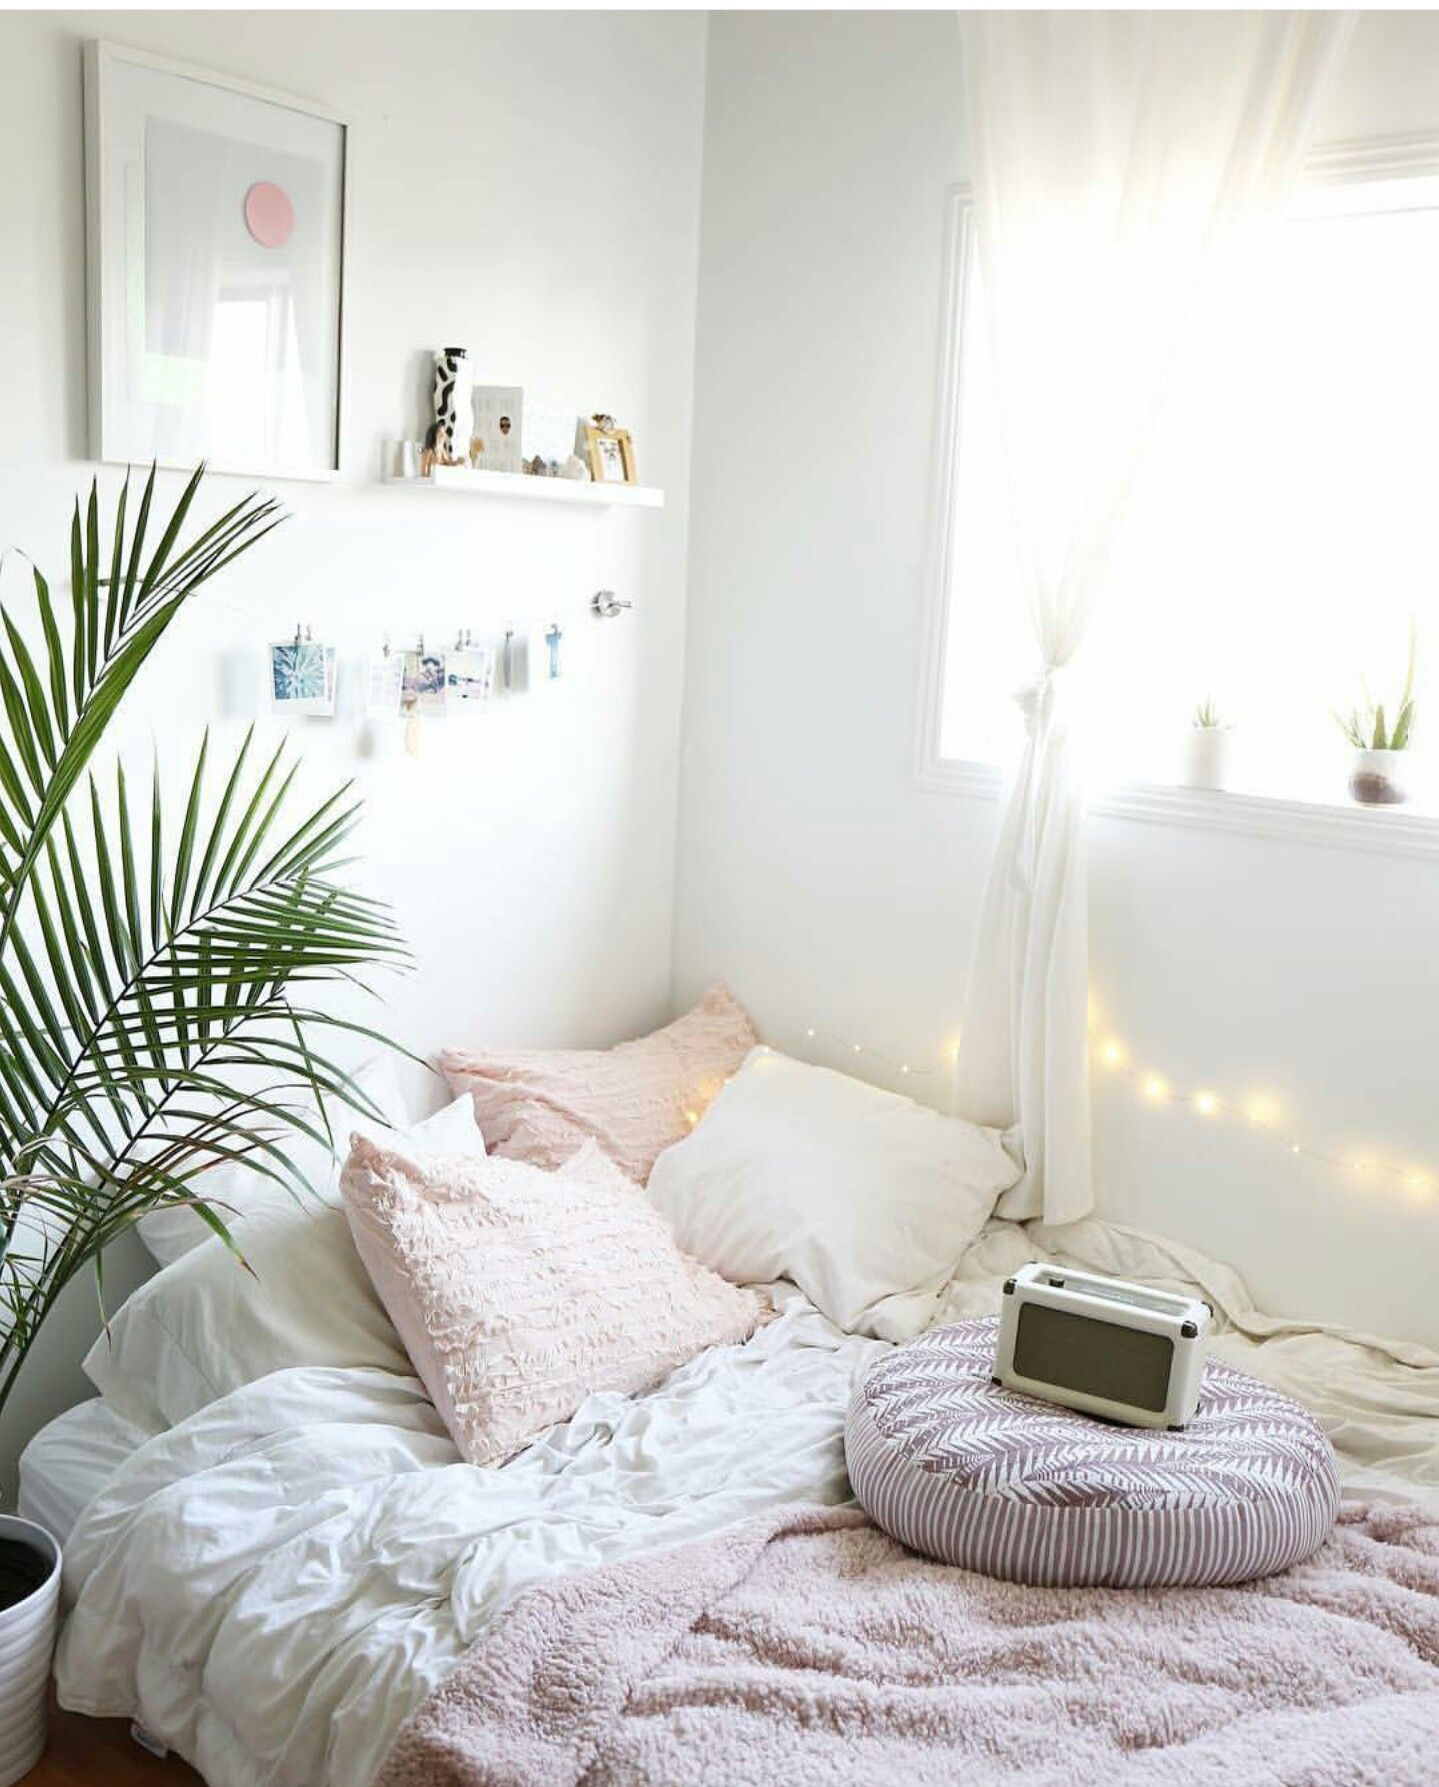 Home Decor Inspiration Sur Instagram Black And White: Pin By Victoria Nicole On Home Decor